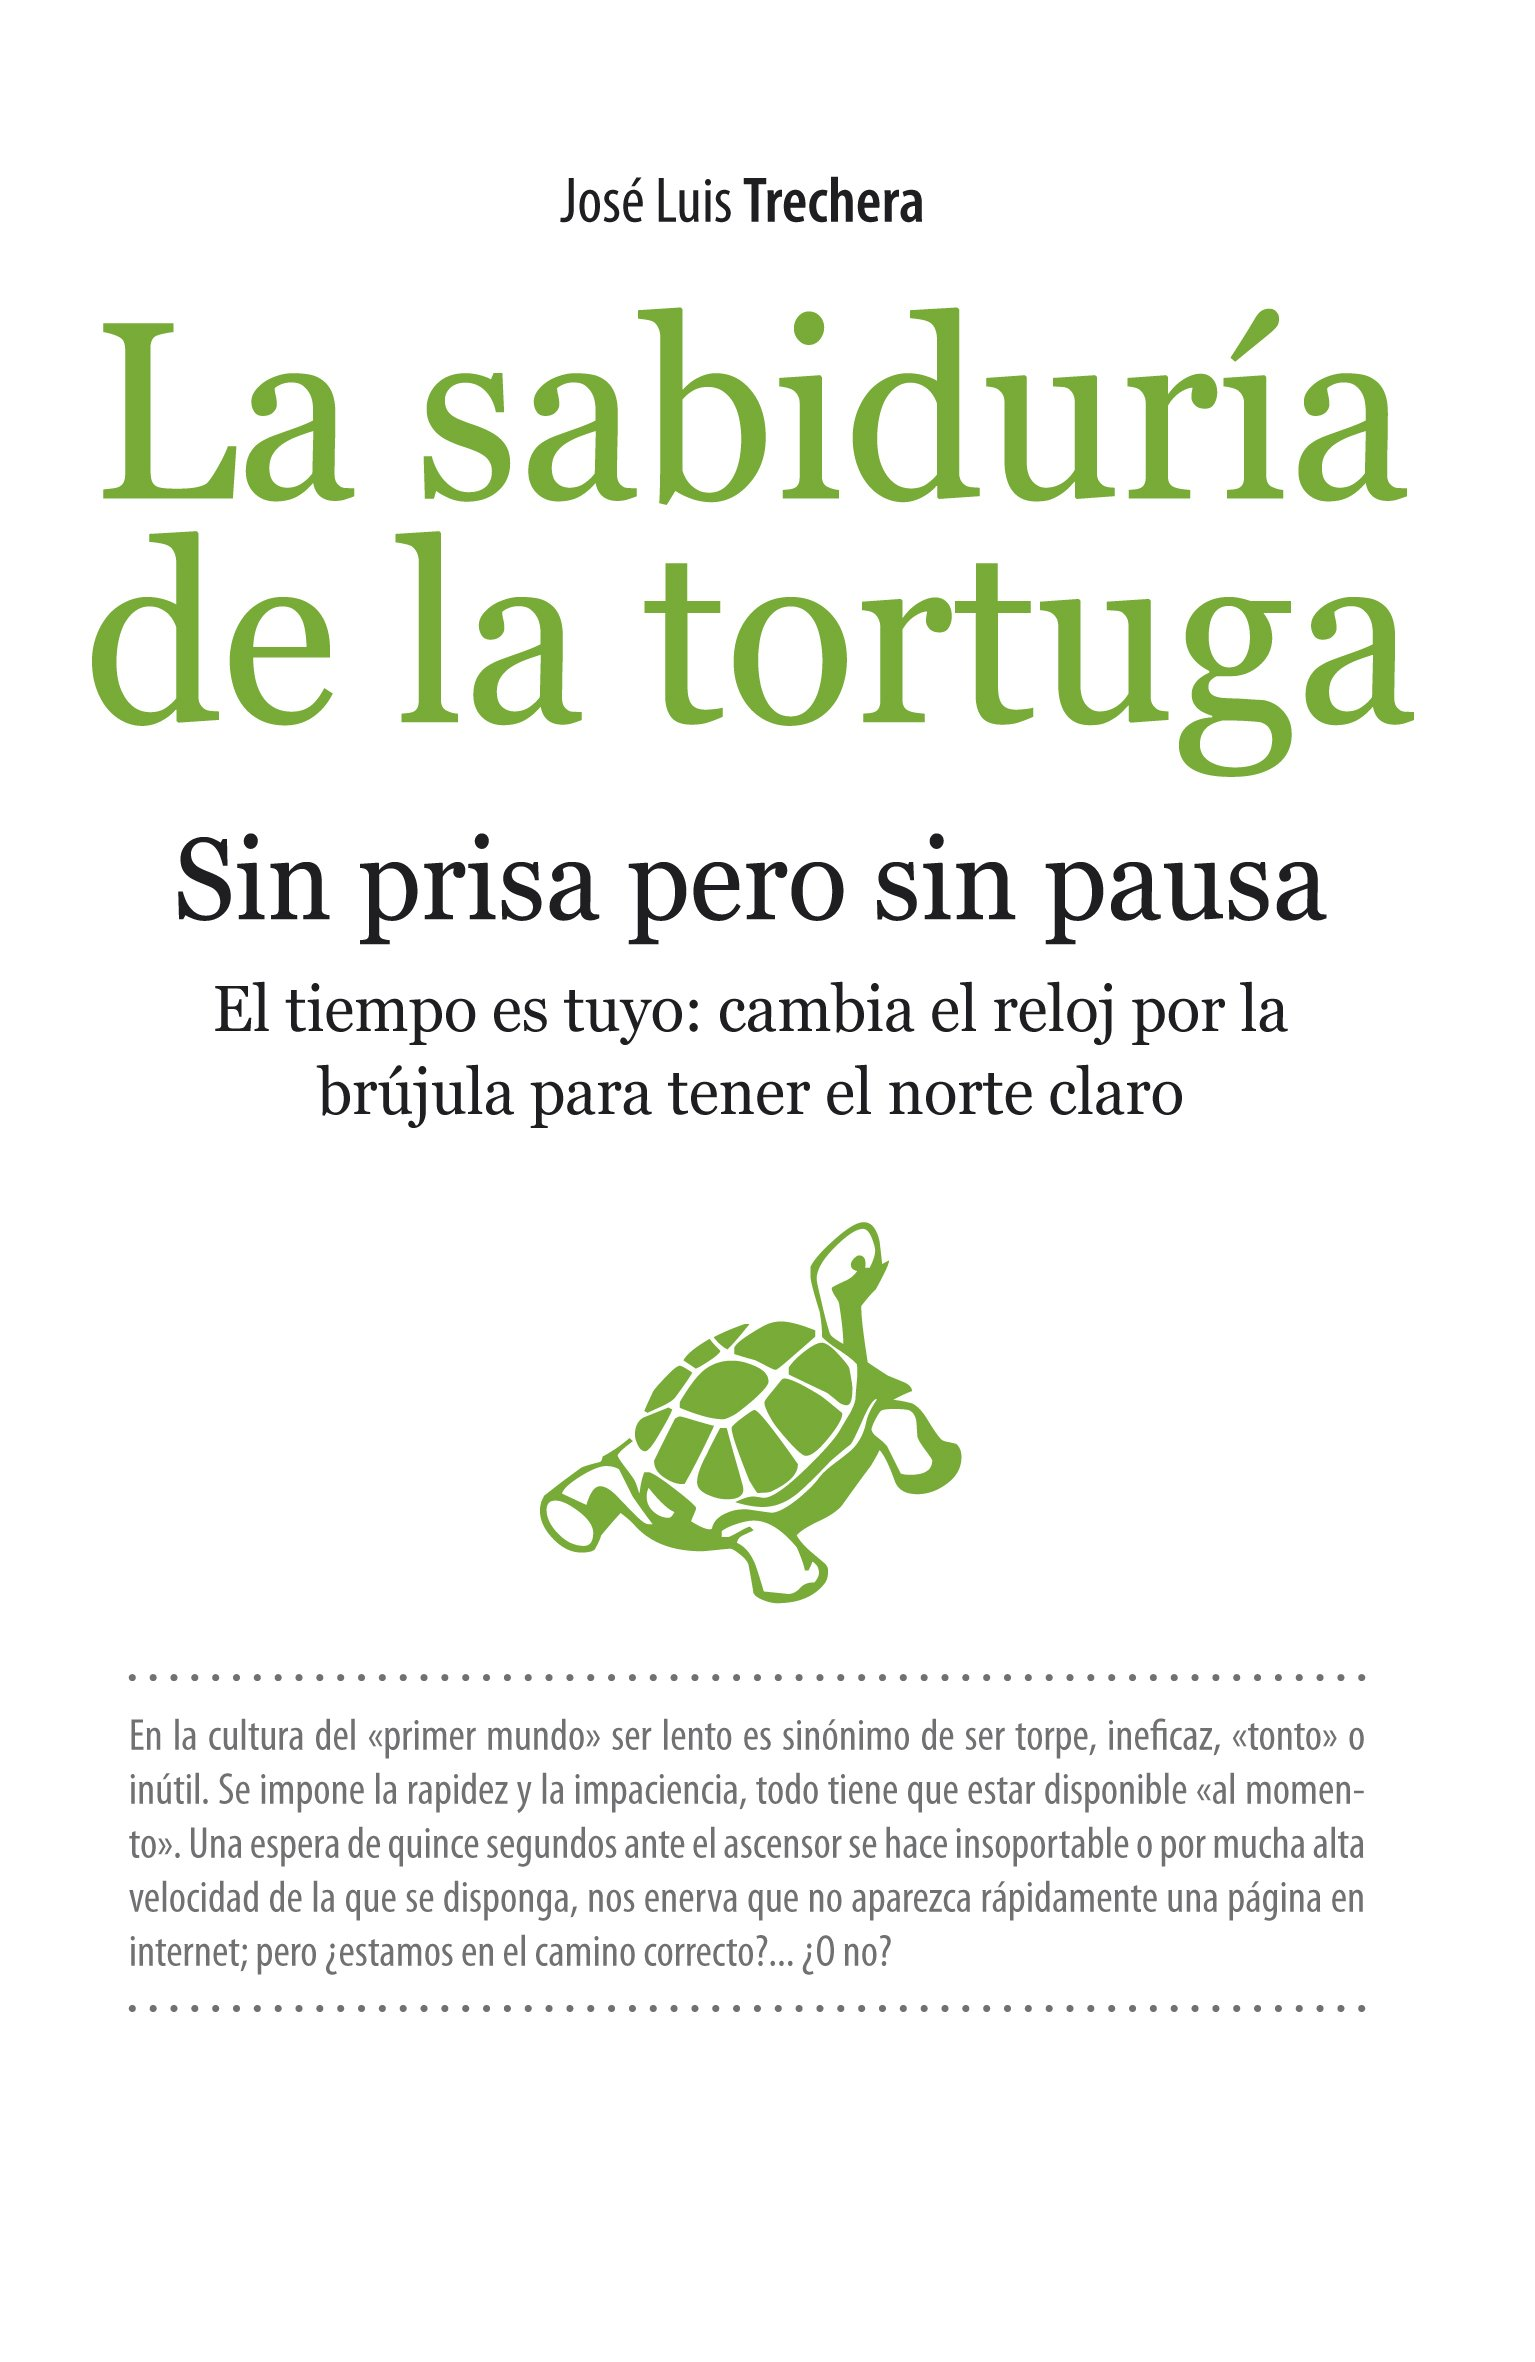 La sabiduria de la tortuga (Spanish Edition): Jose Luis Trechera: 9788492516421: Amazon.com: Books